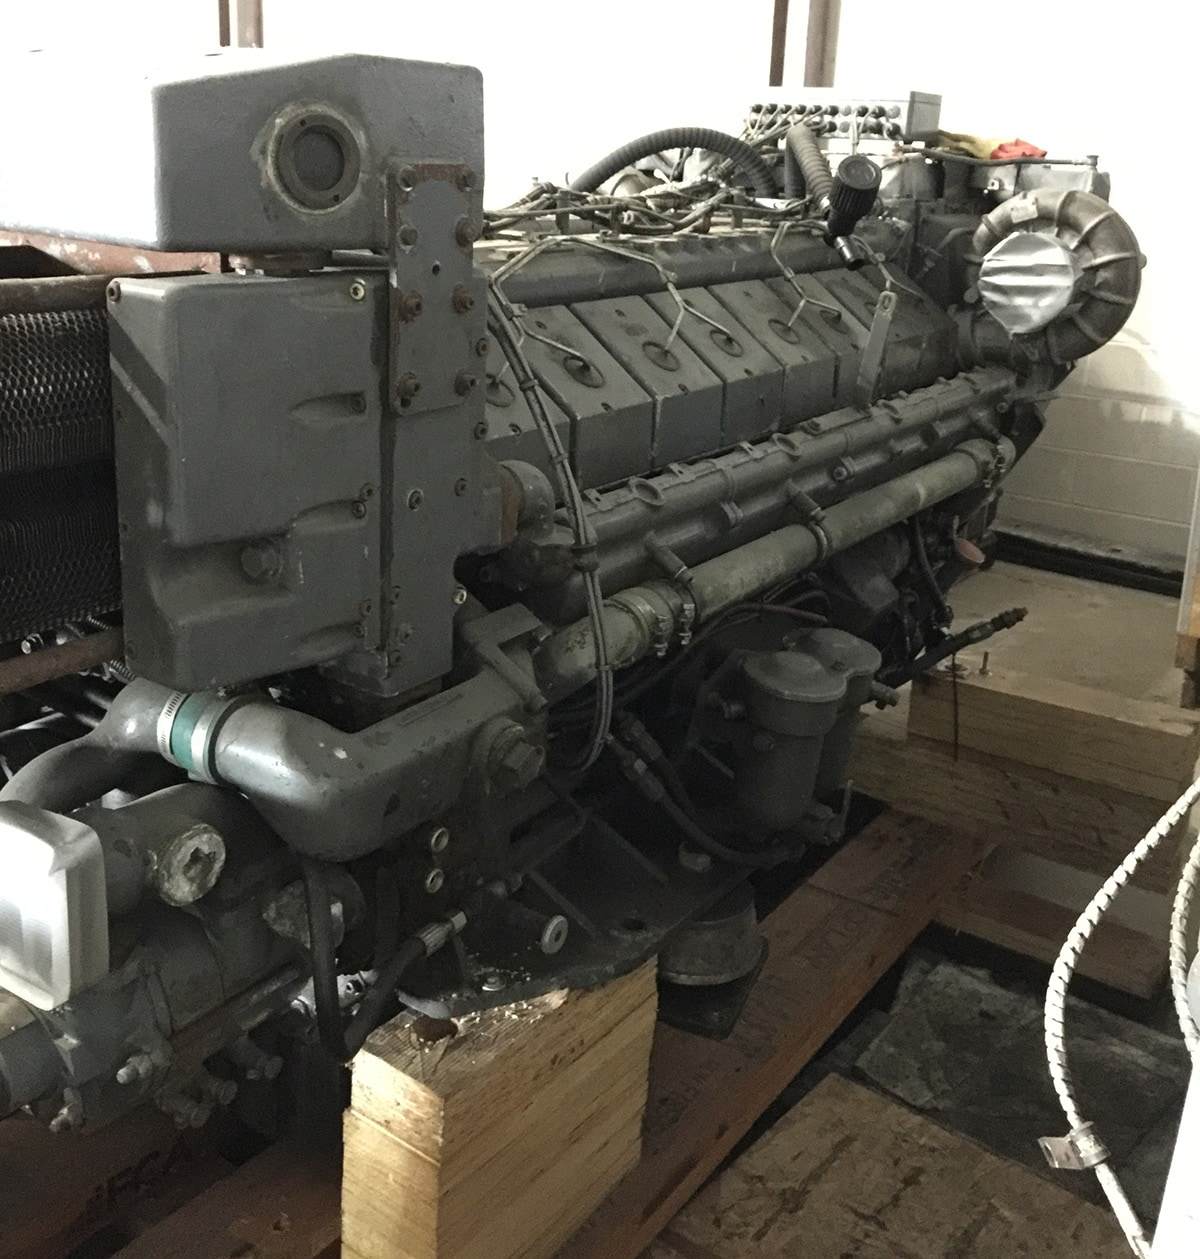 Deutz MWM TBD616 V16 Propulsion Engine Pair - MEG4553